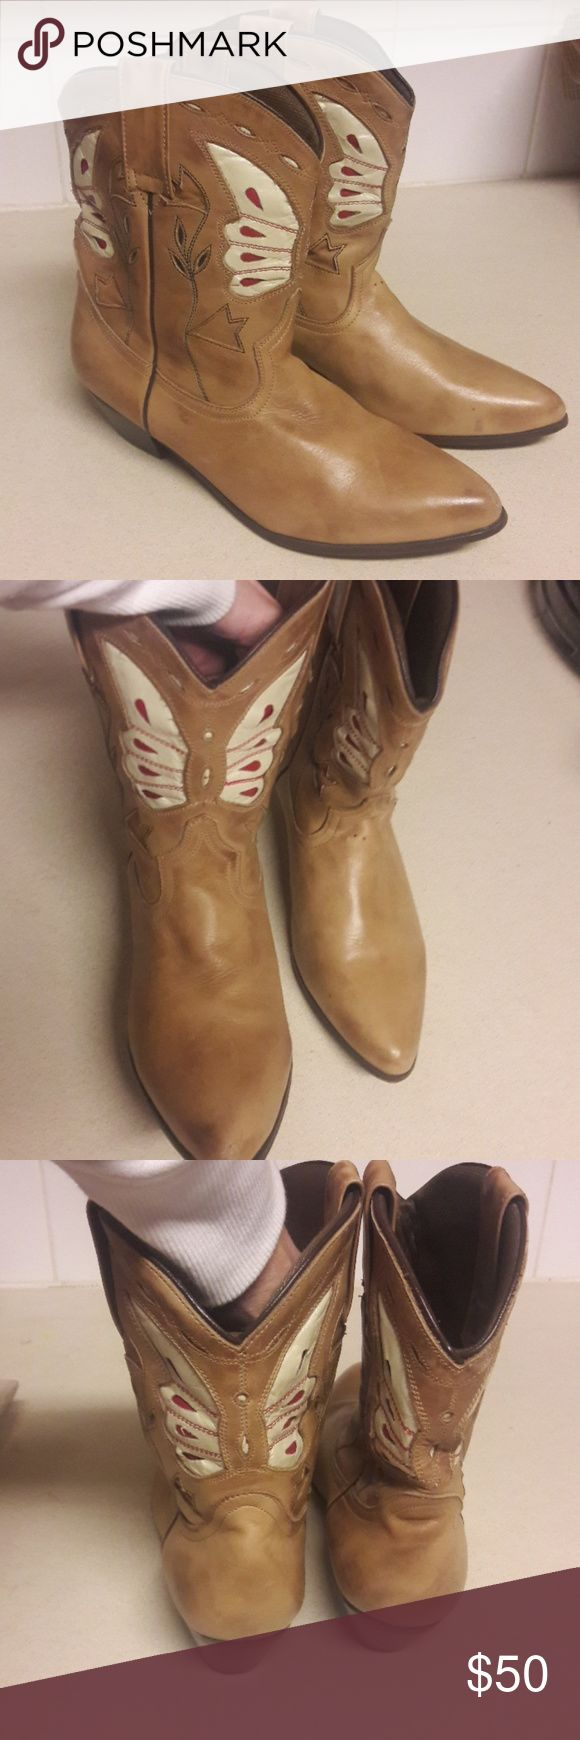 Oak Tree Farms size 9 boots Size 9 short boots by Oak Tree Hill.  Beautiful camel color with delicate pattern.  Gently used - very good condition. Oak Tree Farms Shoes Ankle Boots & Booties